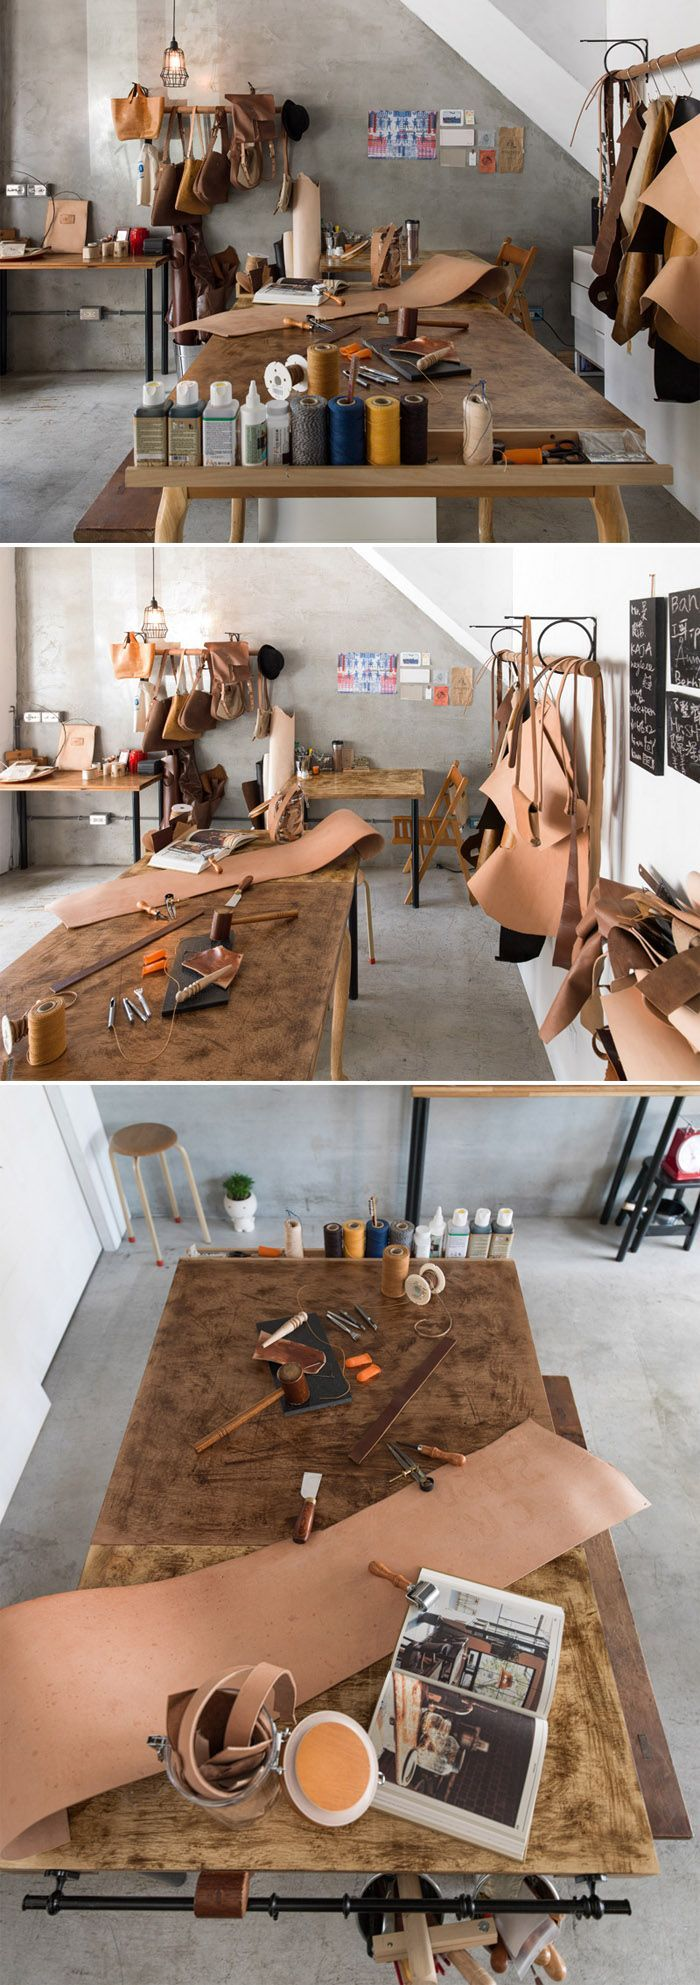 TZABA | LEATHER WORKSHOP